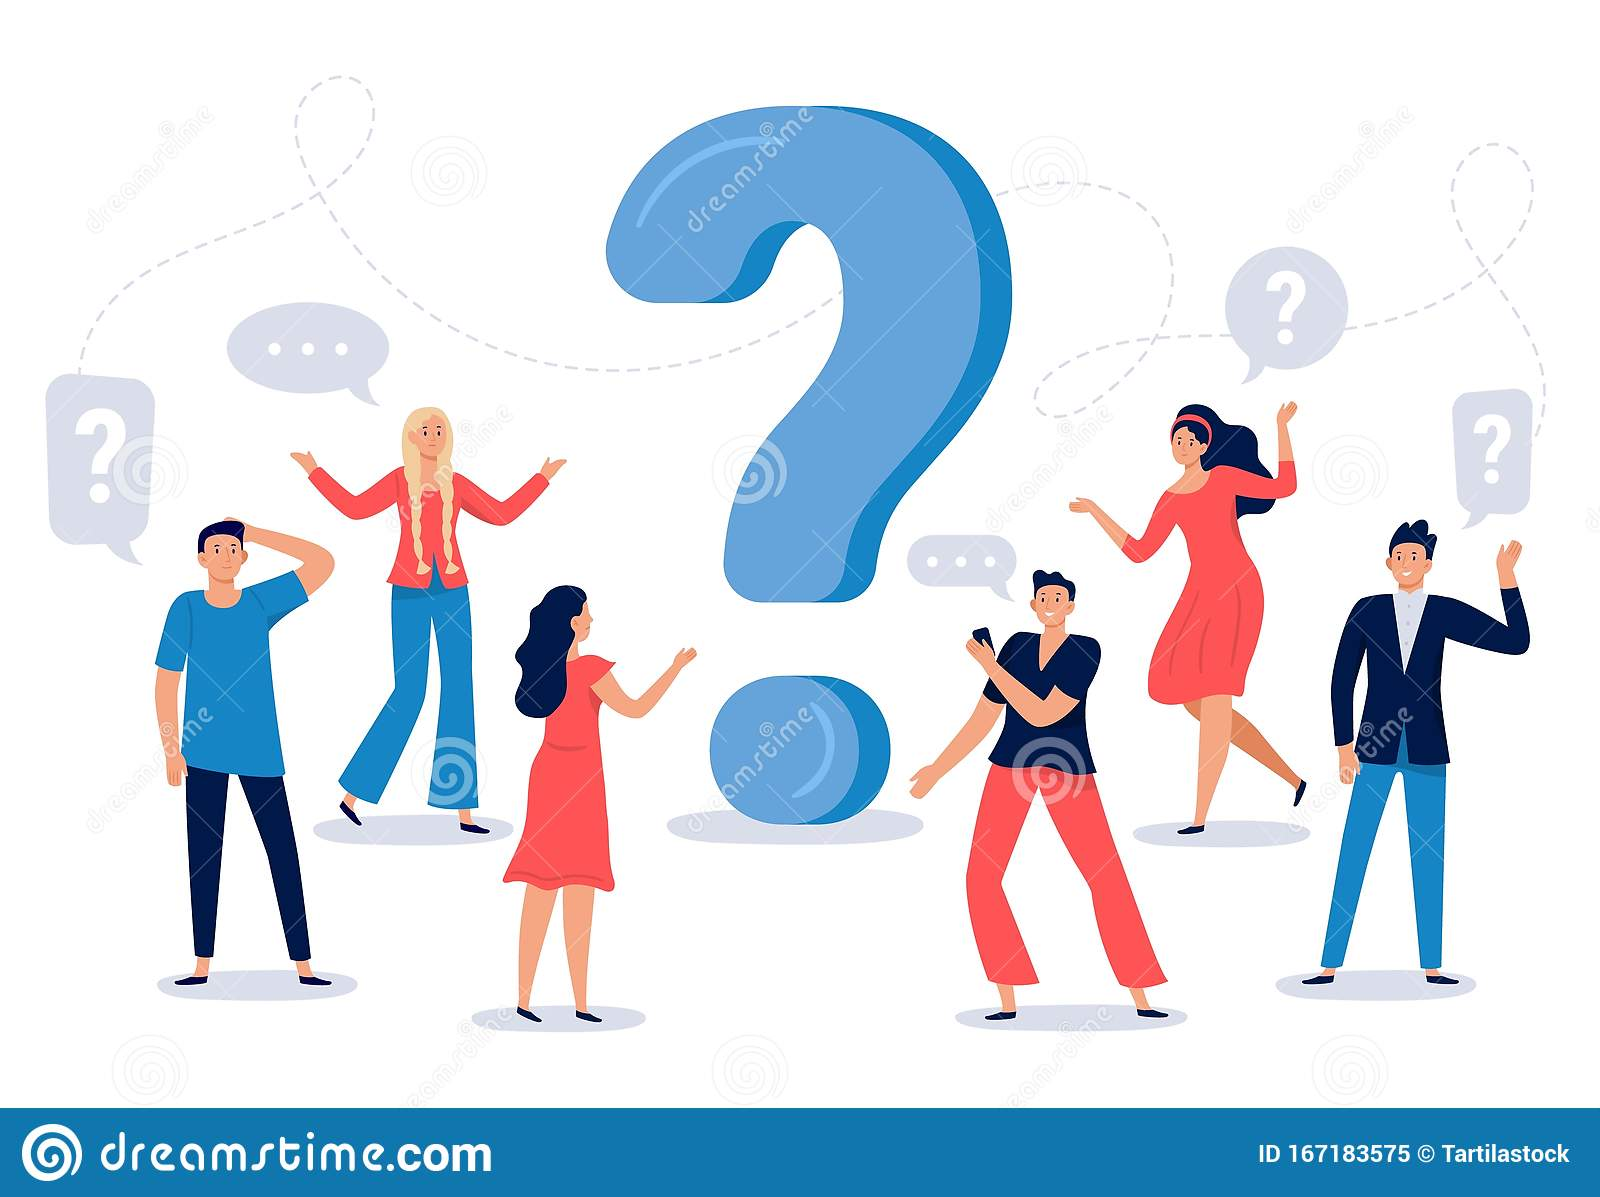 People Ask Question. Confused Person Asking Questions, Crowd Finding  Answers and Question Sign Vector Illustration Stock Vector - Illustration  of advice, happy: 167183575